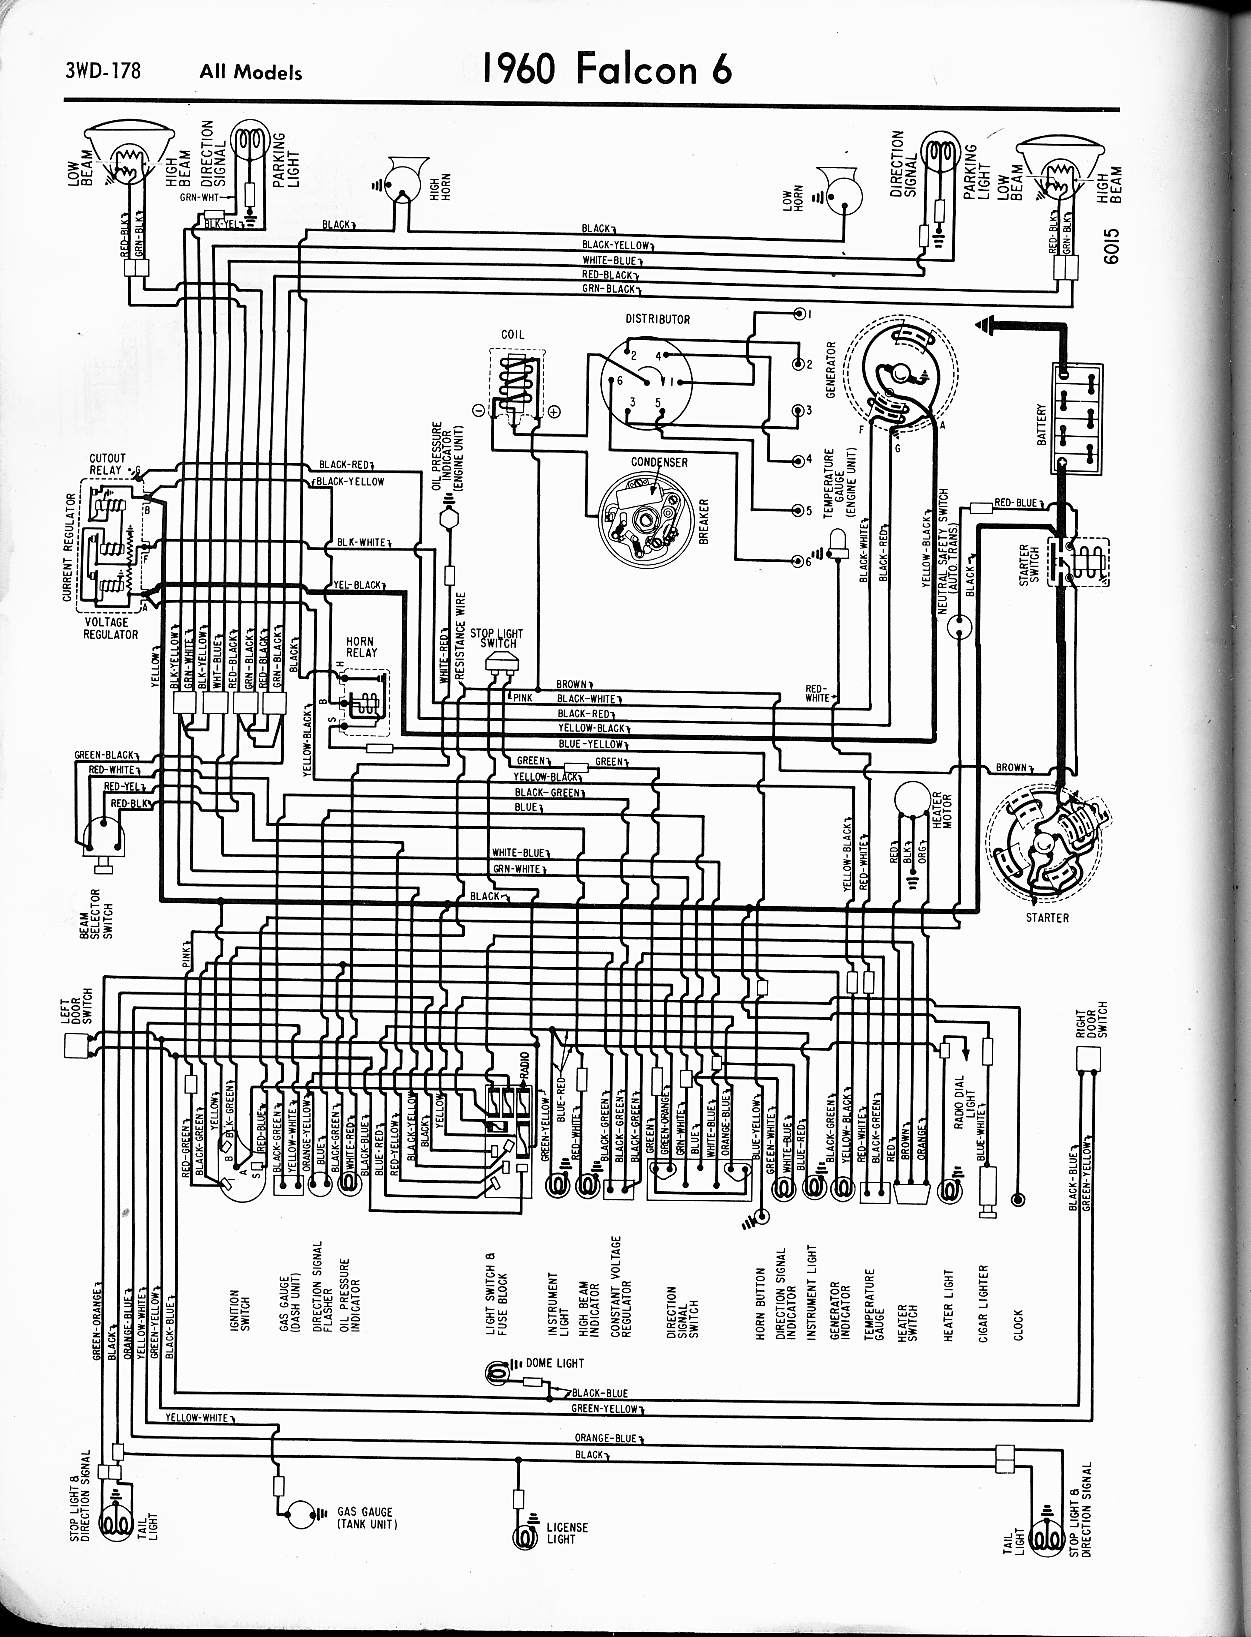 1962 Ford Fairlane Wiring Diagram - Wiring Diagram Signals ... Falcon Winch Wiring Diagram on